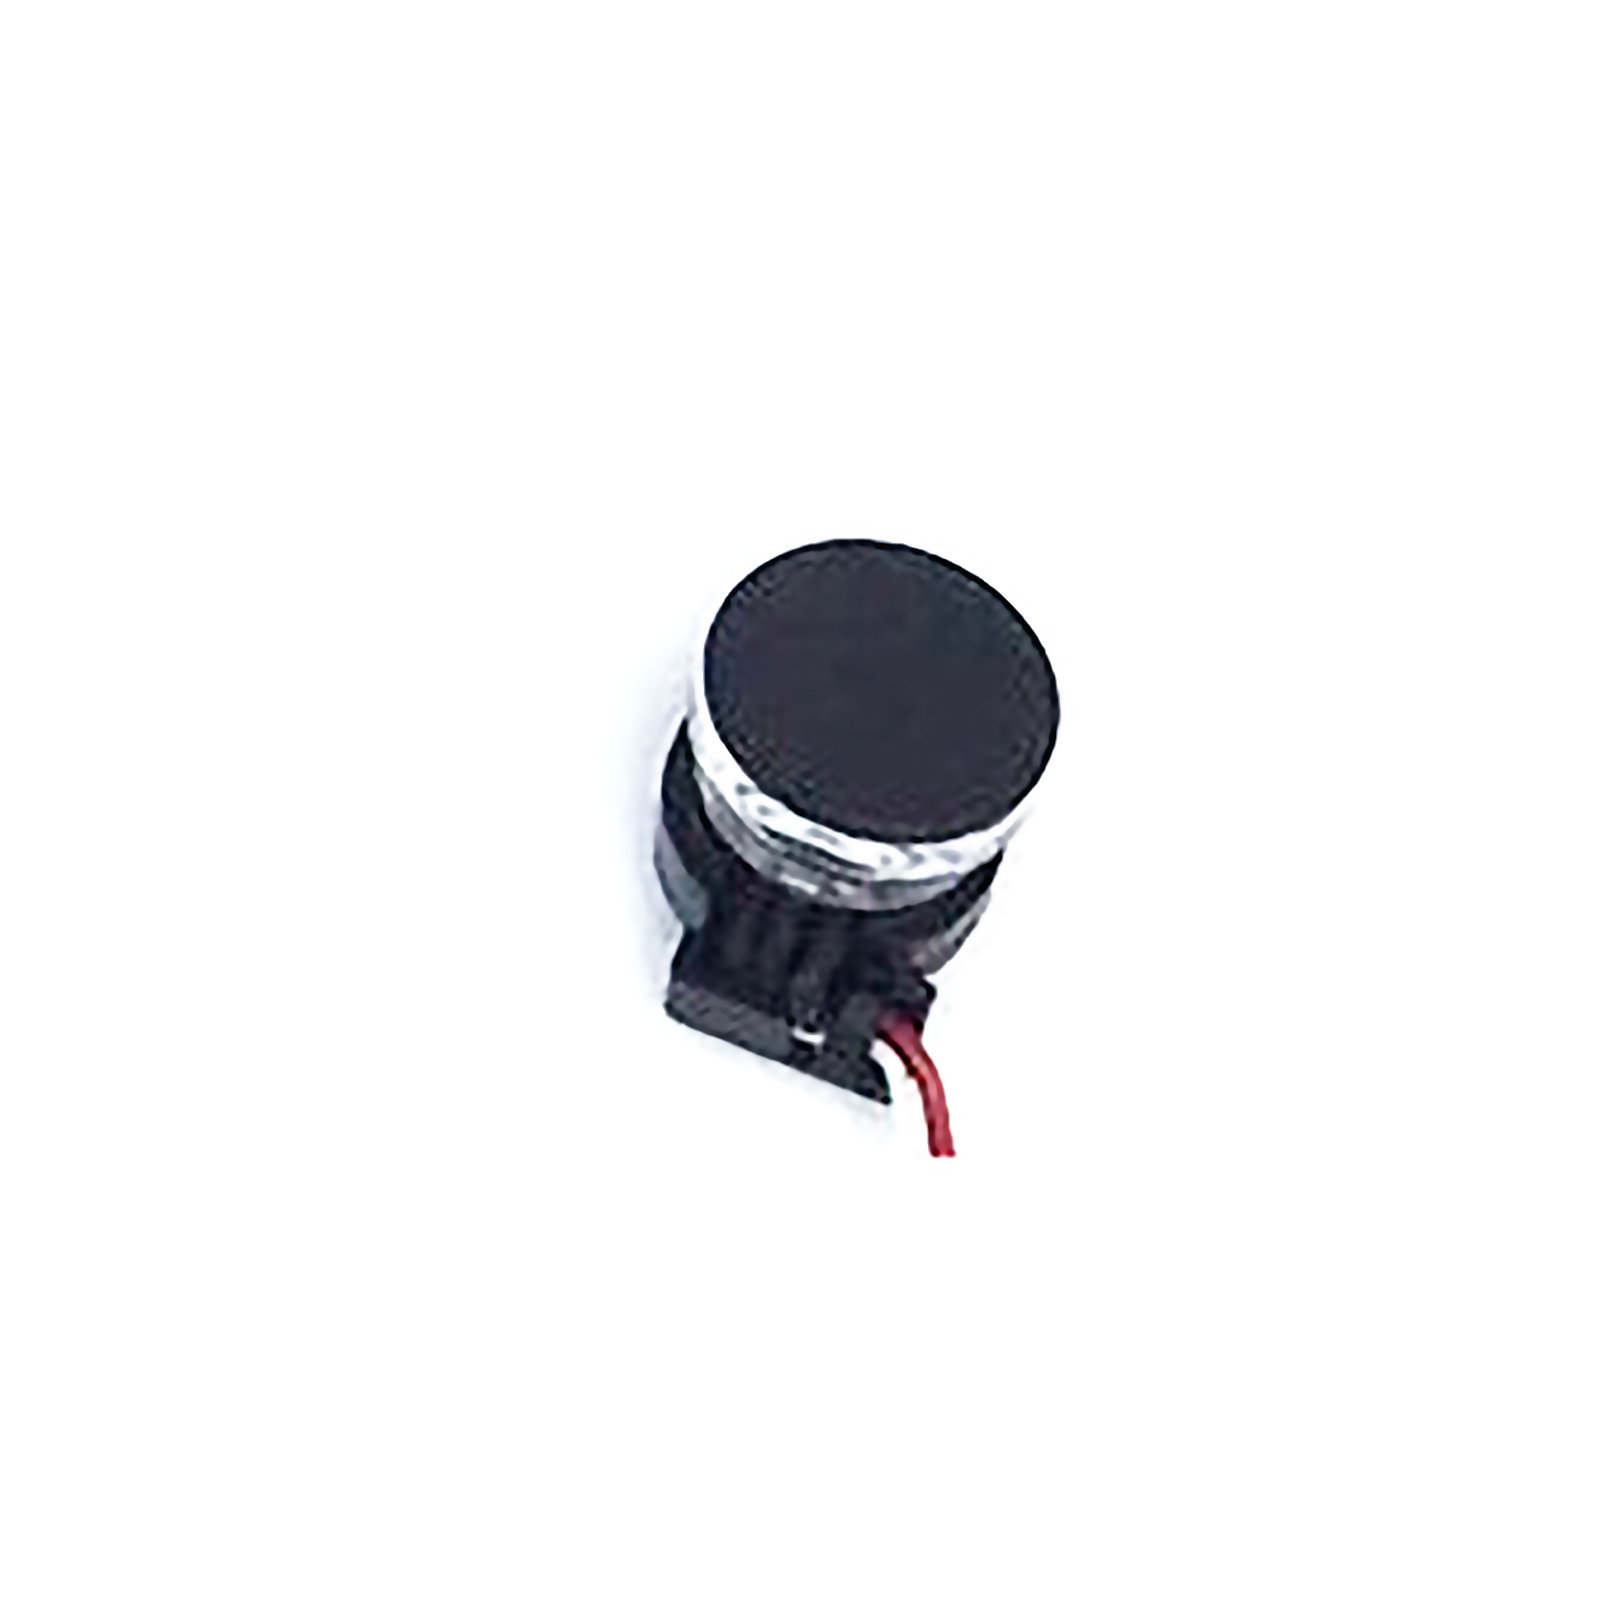 Vacuum Cleaner Infrared Sensors For Irobot Roomba 500 600 700  Replacement 1pc